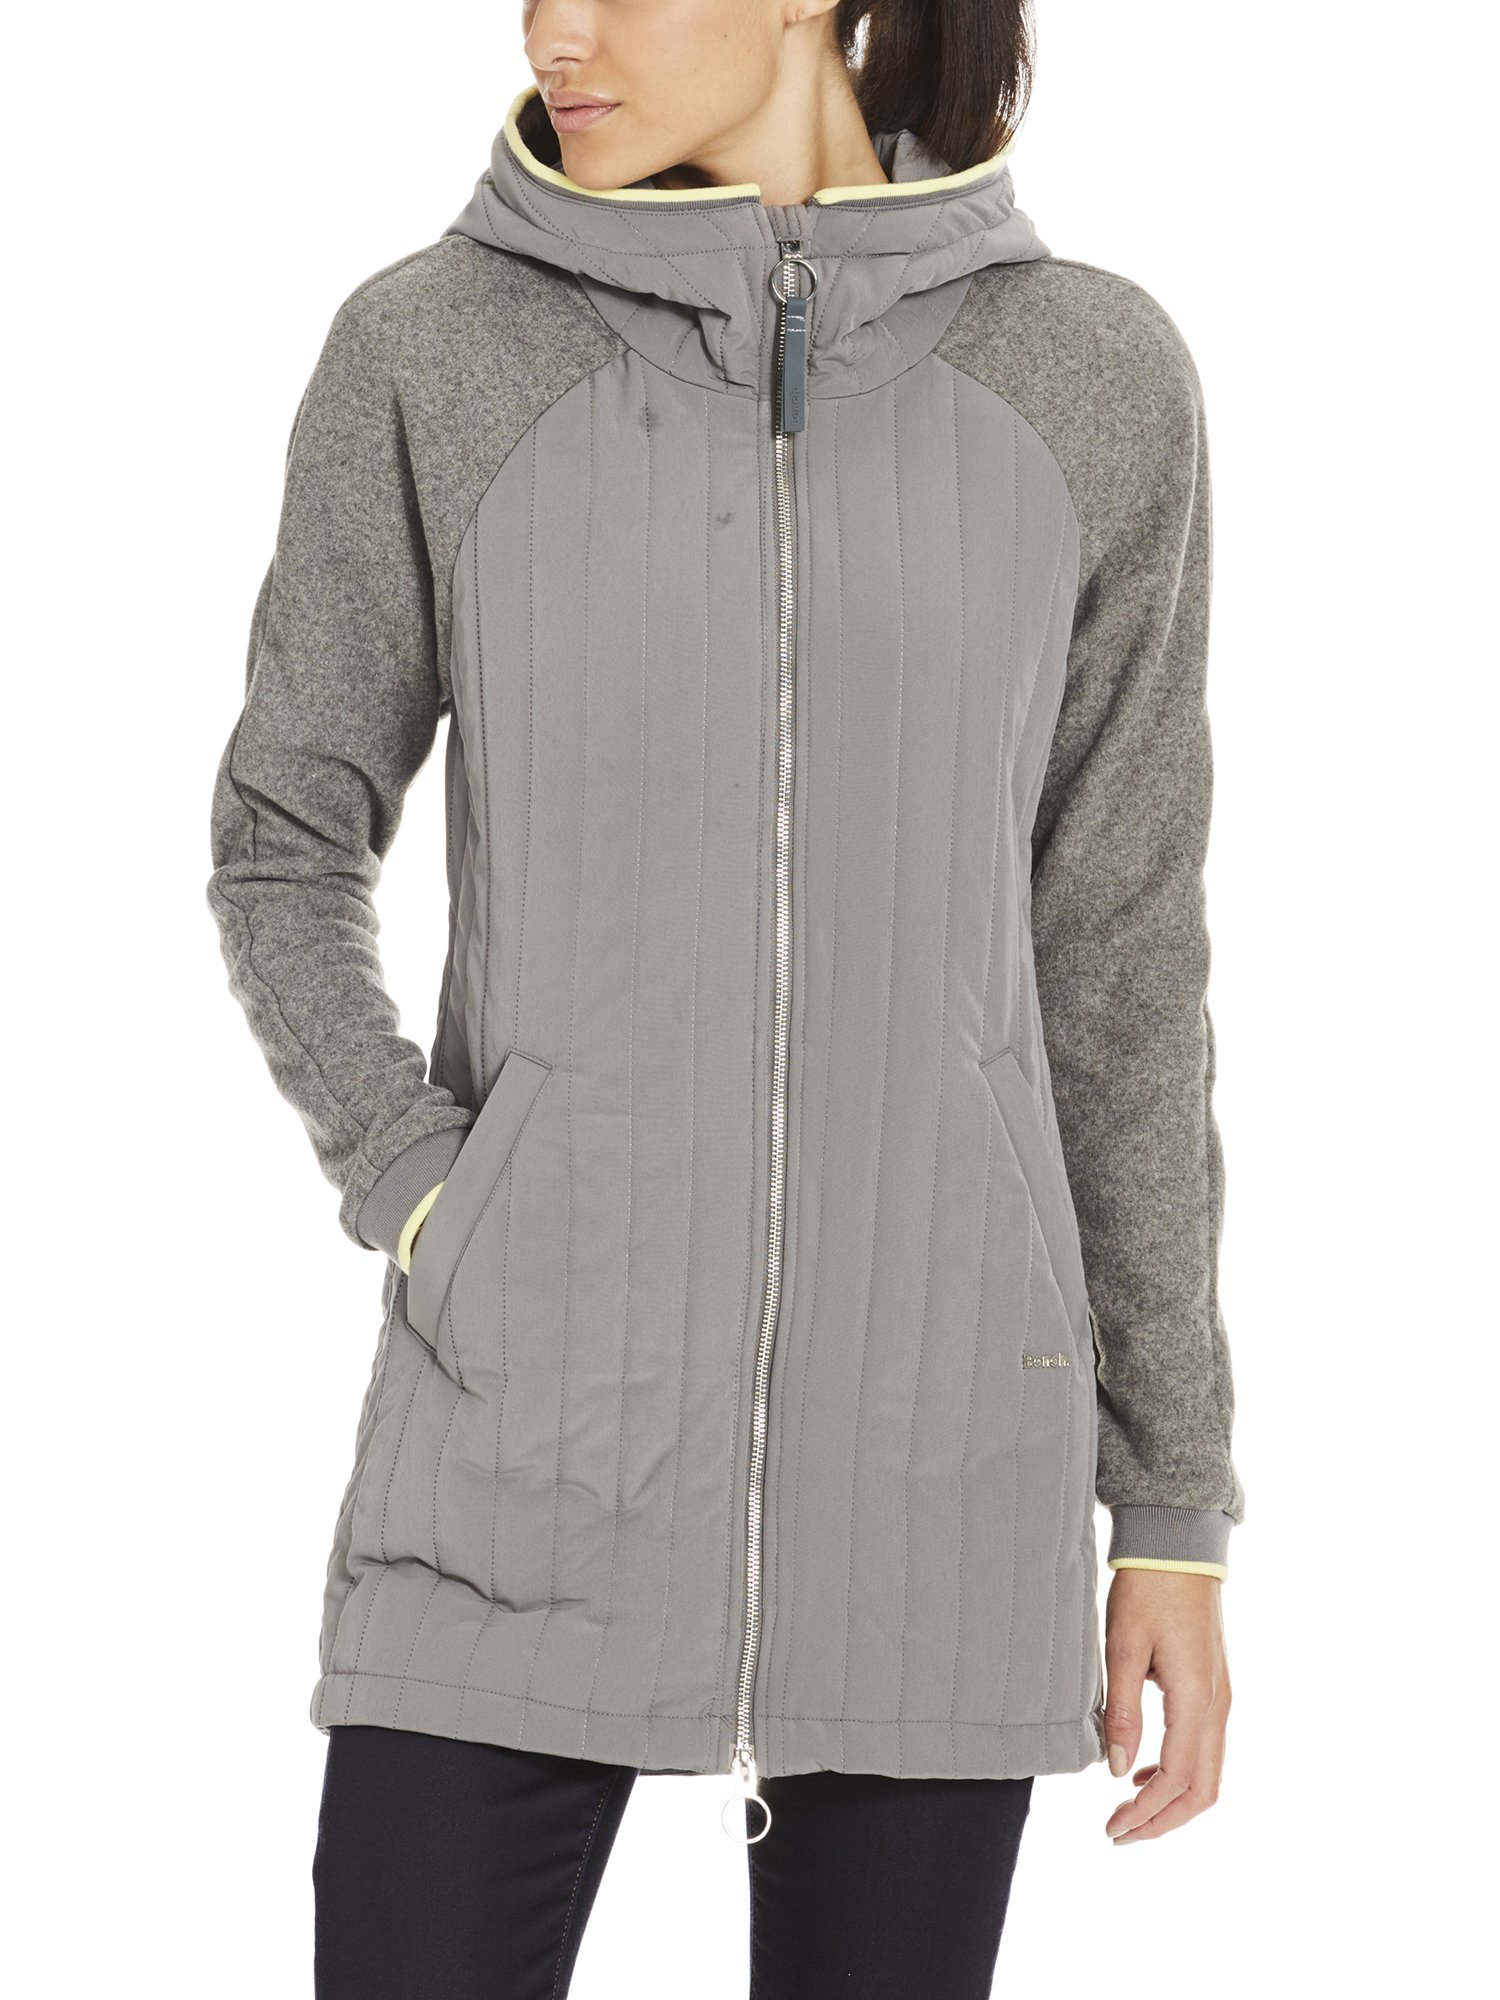 Material Core Mix ManteauGrisdark Grey Gy149Small Femme Slim Bench Coat 8w0PknO